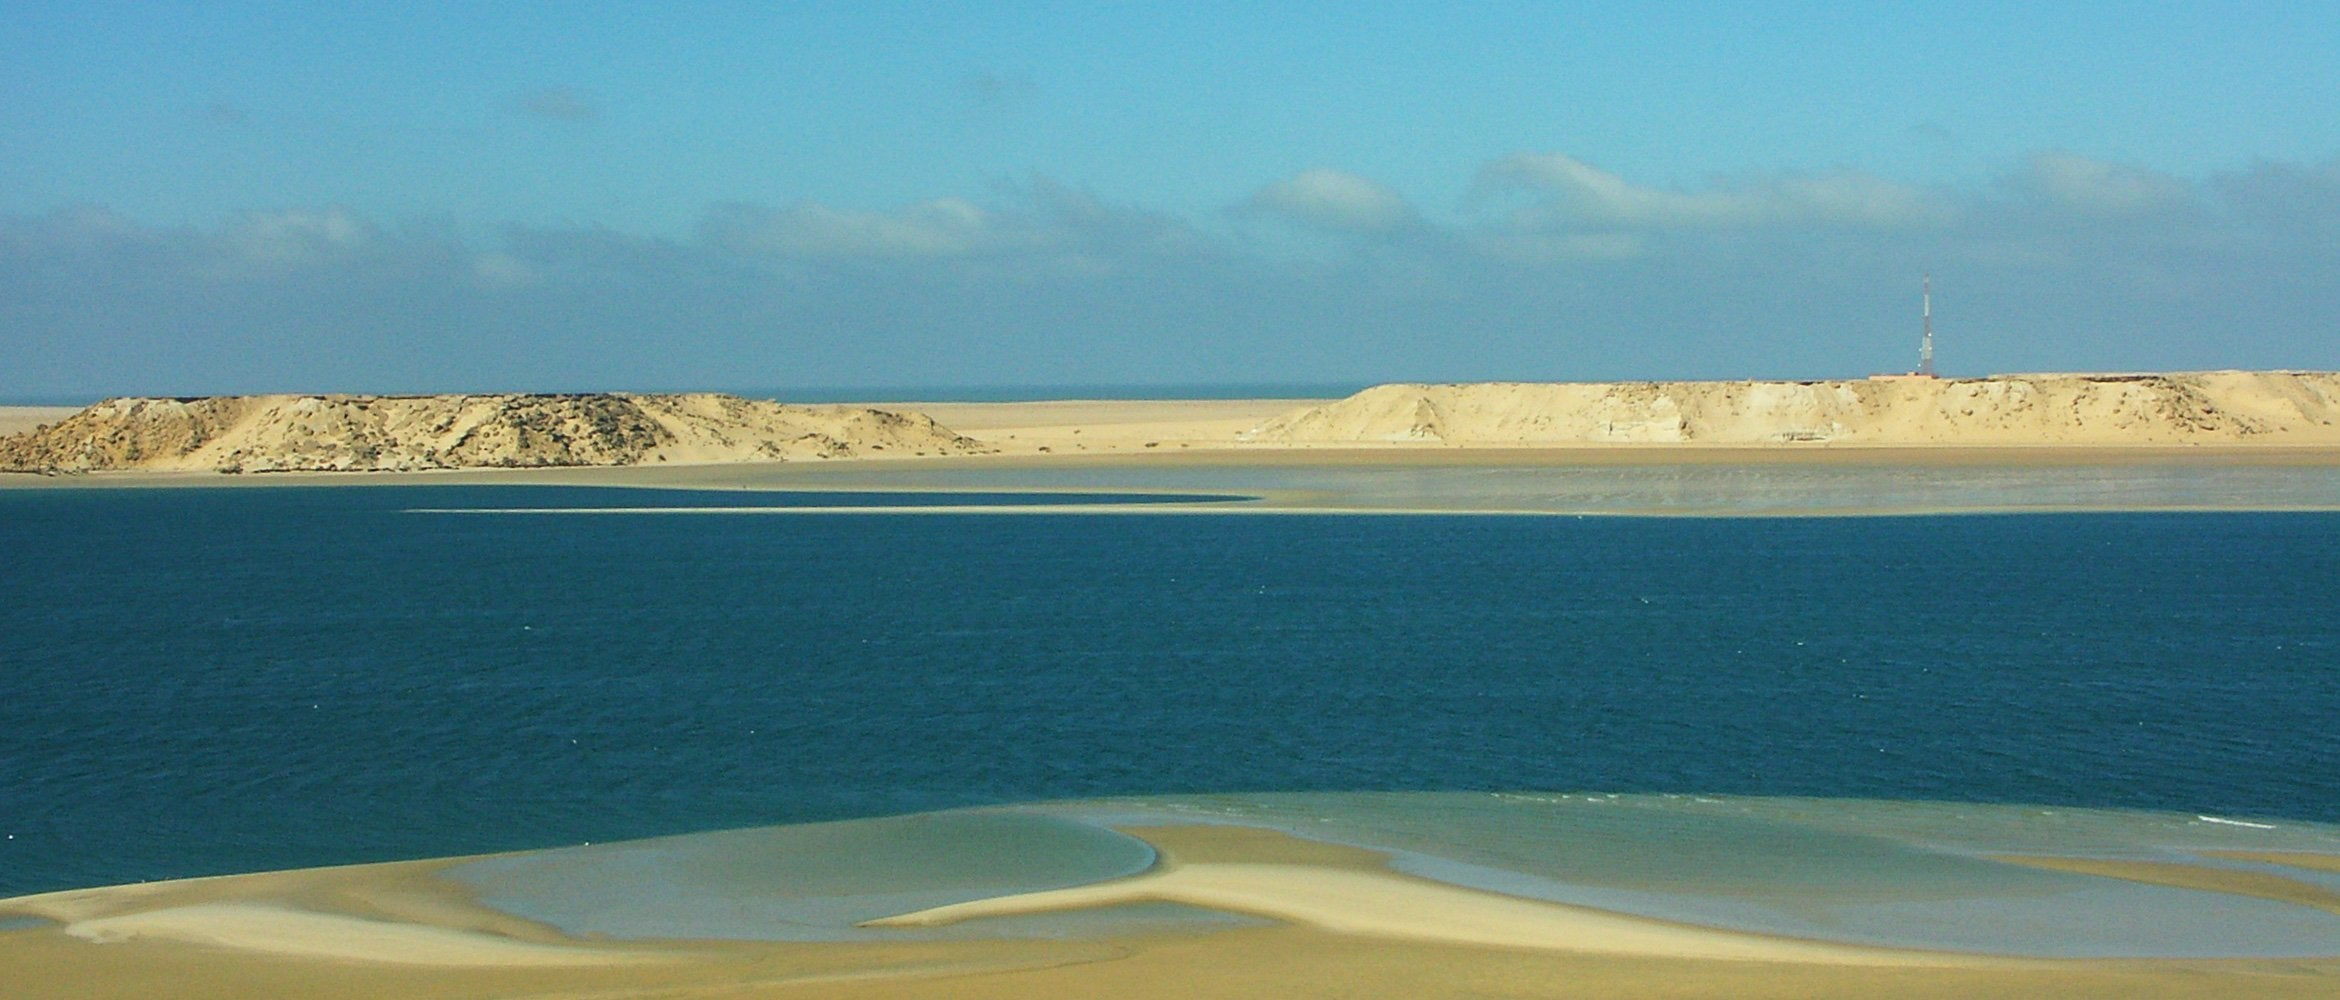 Dakhla: The Desert Kitesurf Oasis | WildBounds